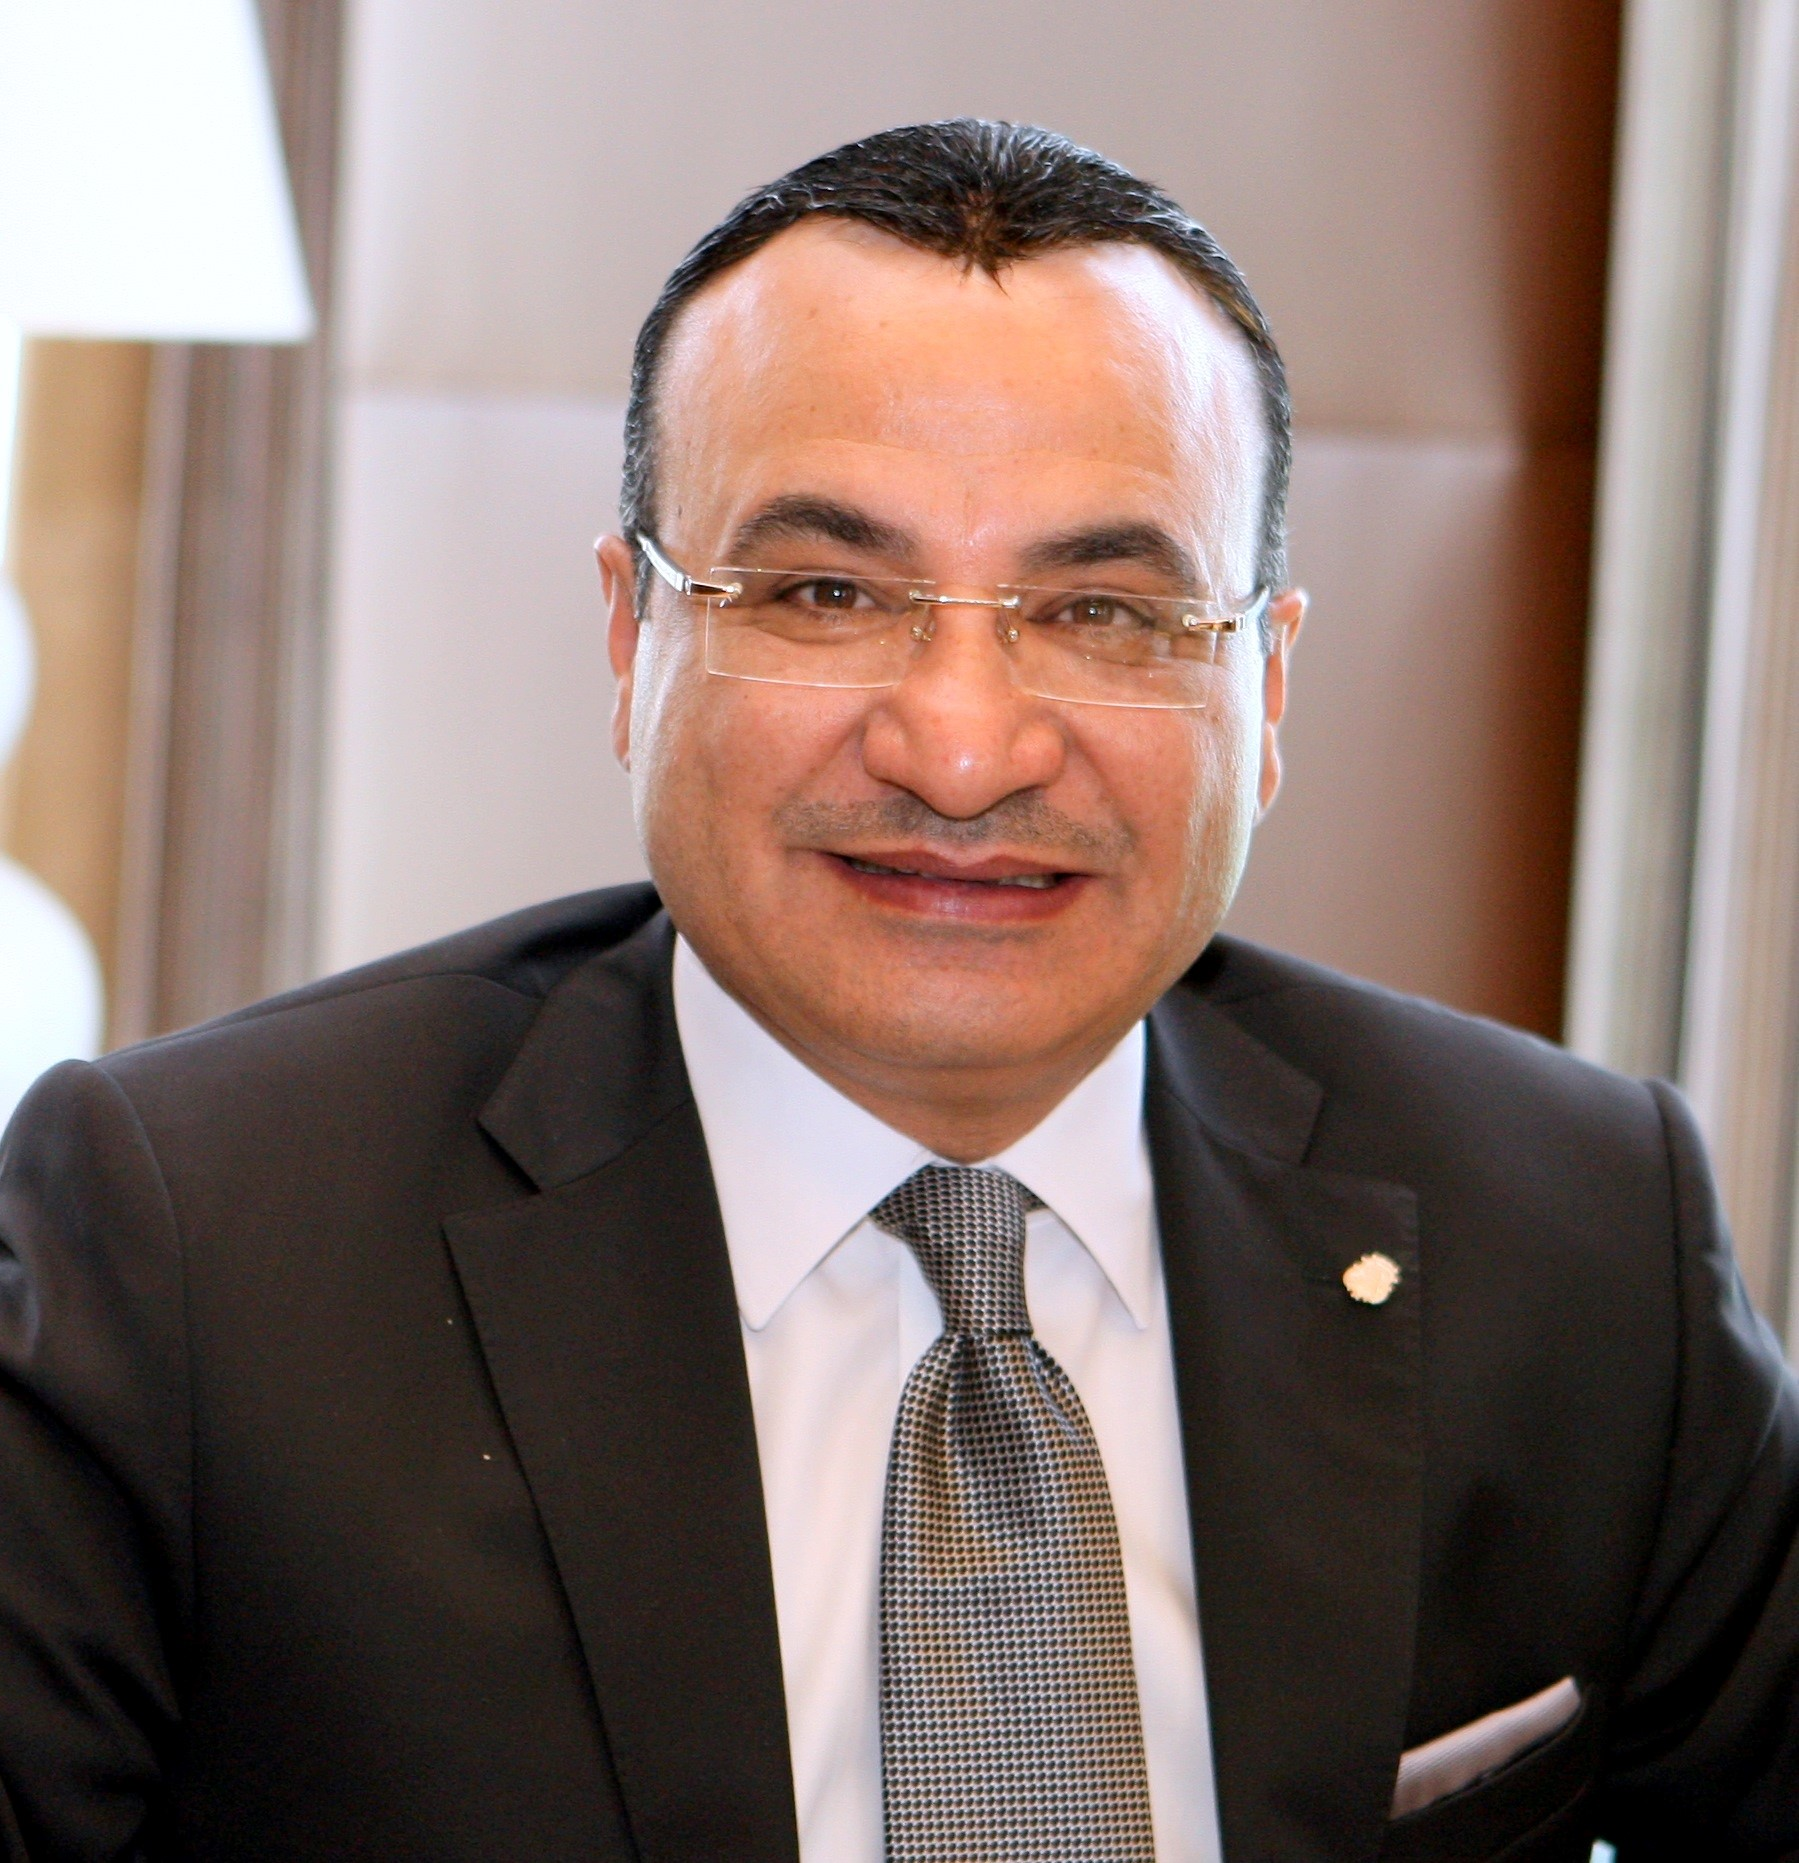 TAREQ DERBAS APPOINTED AS NEW GENERAL MANAGER OF THE RITZ-CARLTON